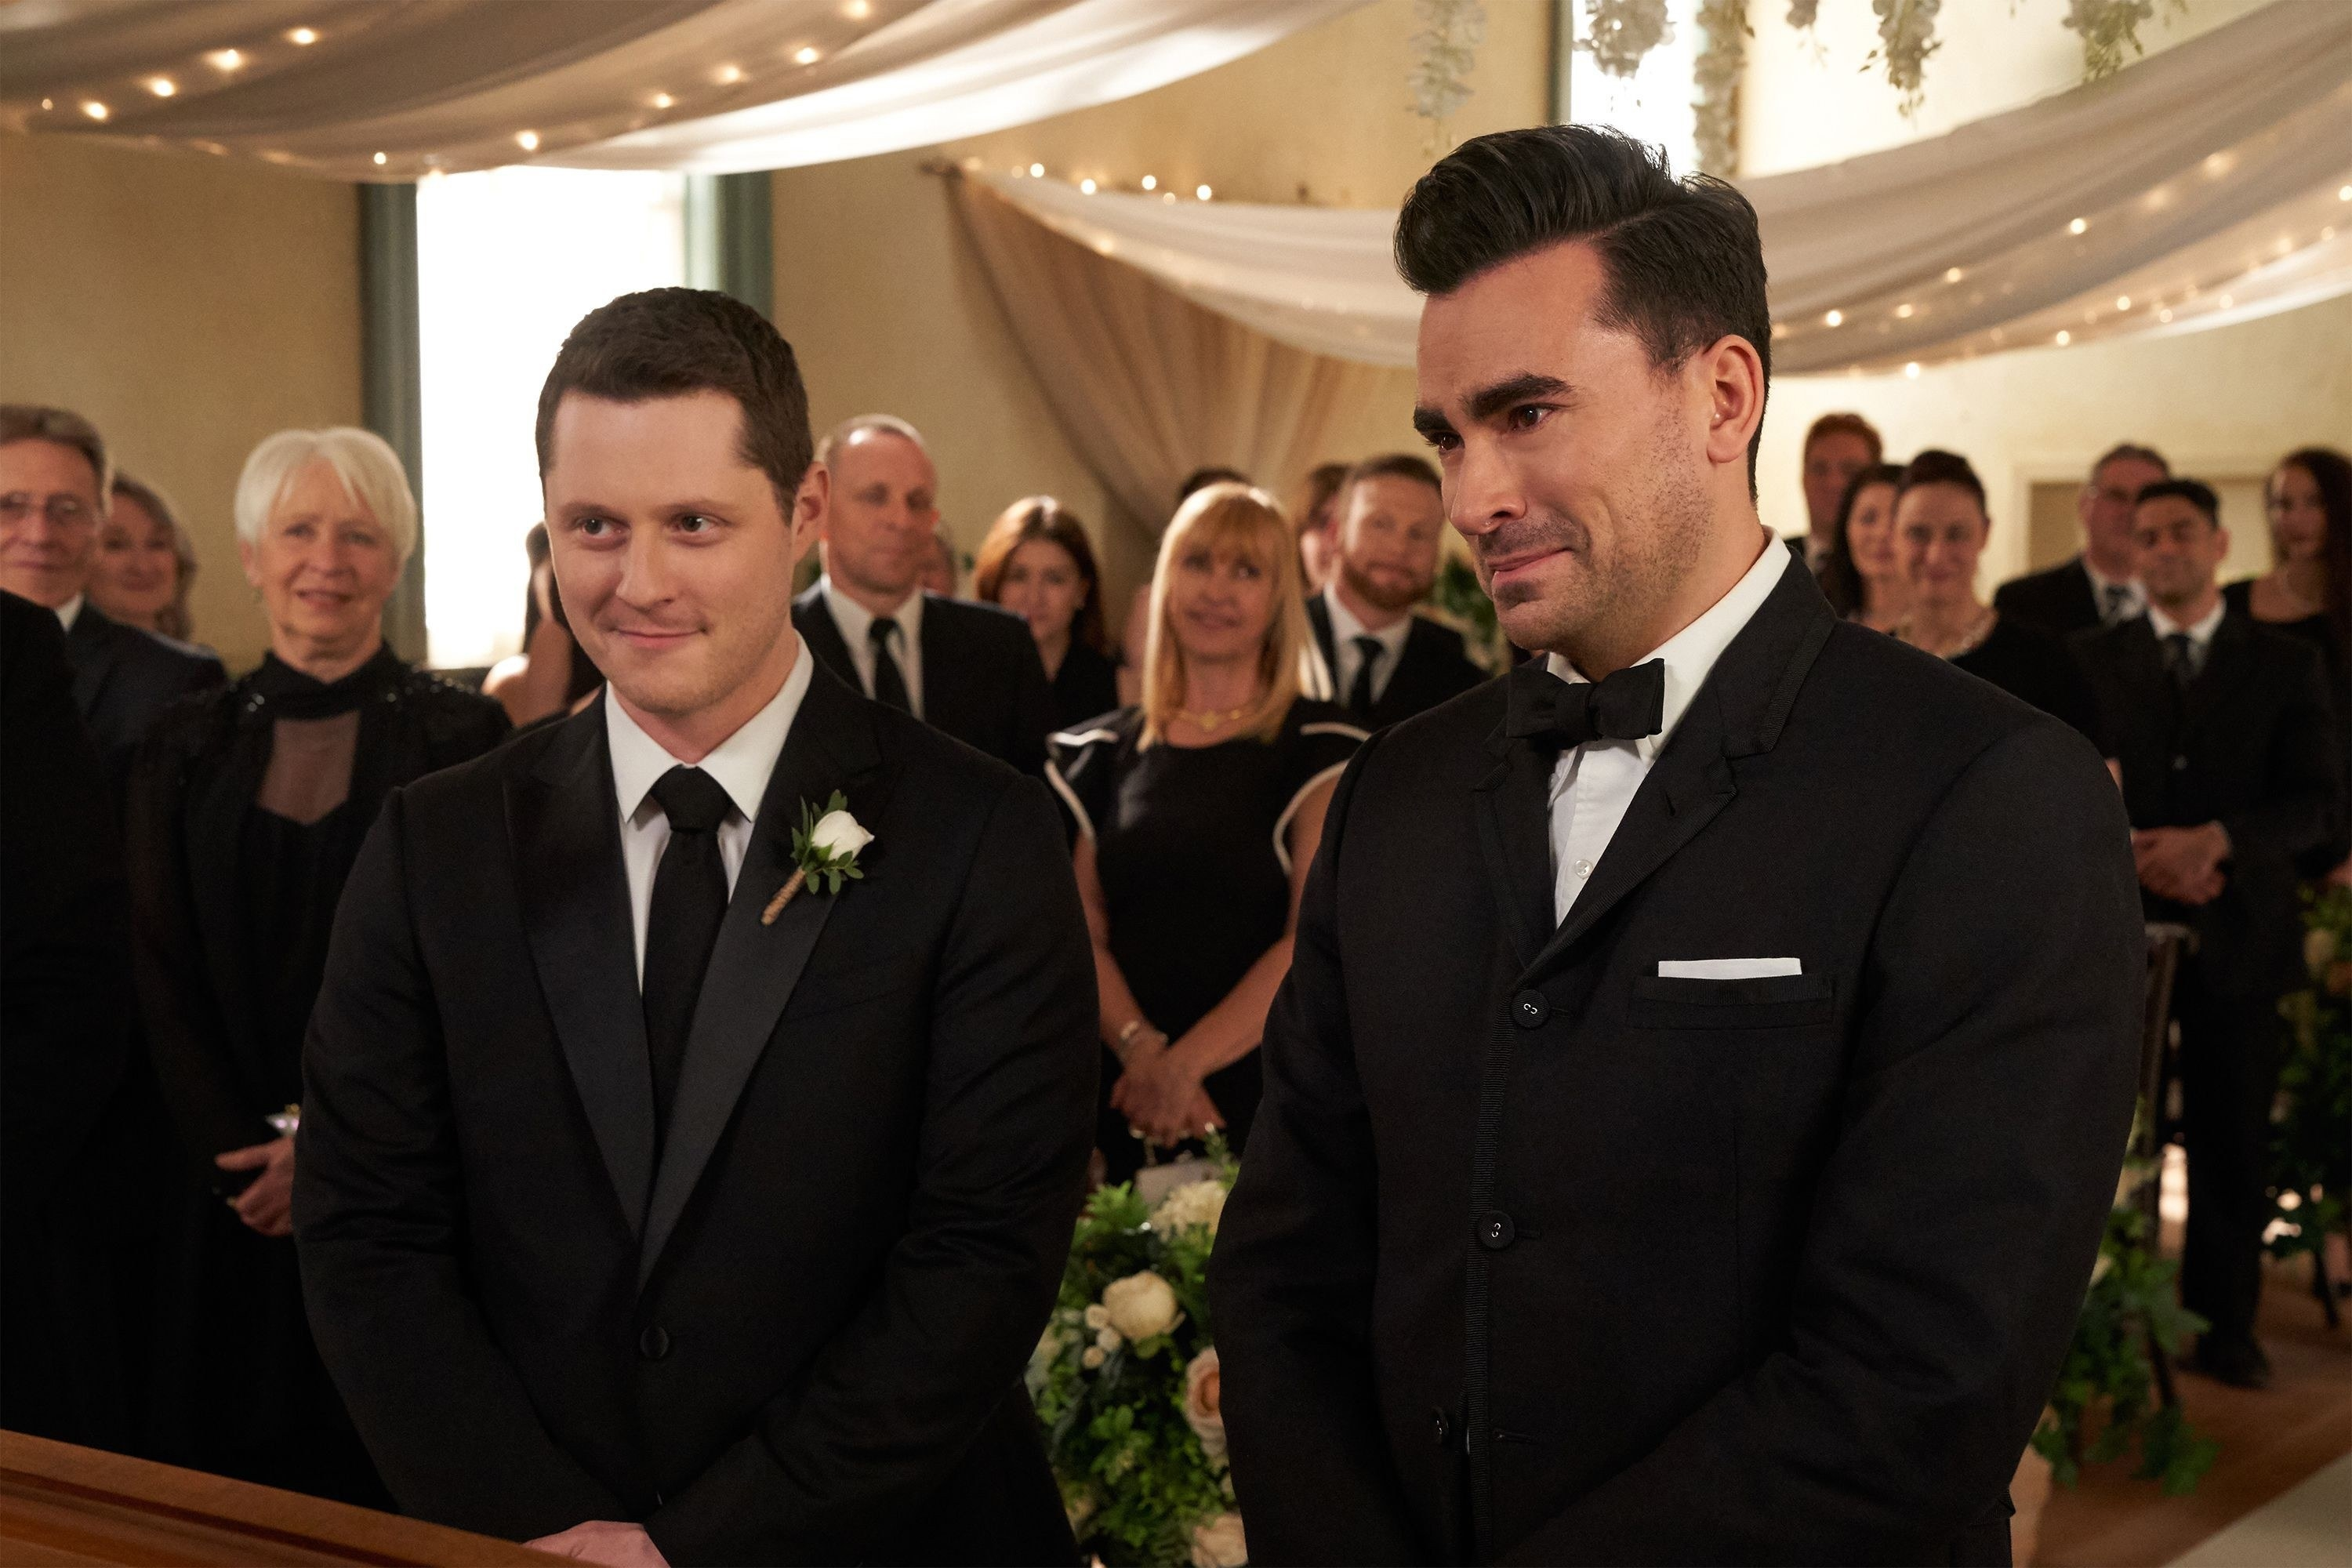 Patrick and David at the altar for their wedding